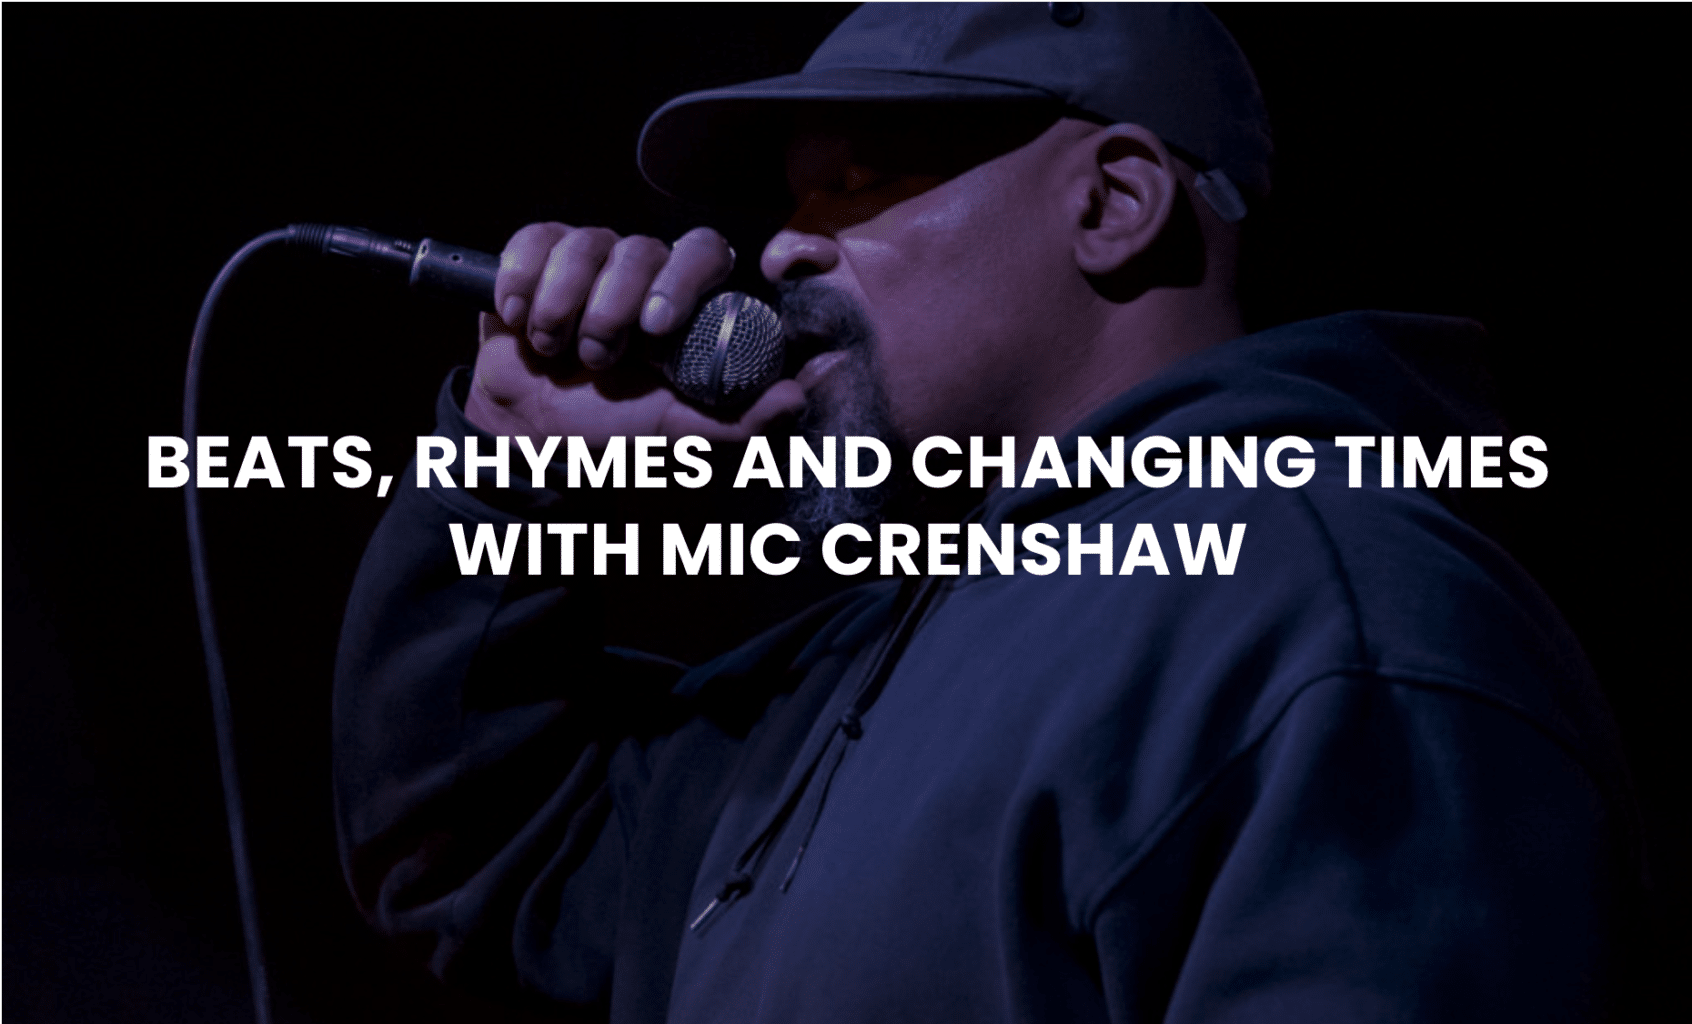 Image of MC and poet Mic Crenshaw performing